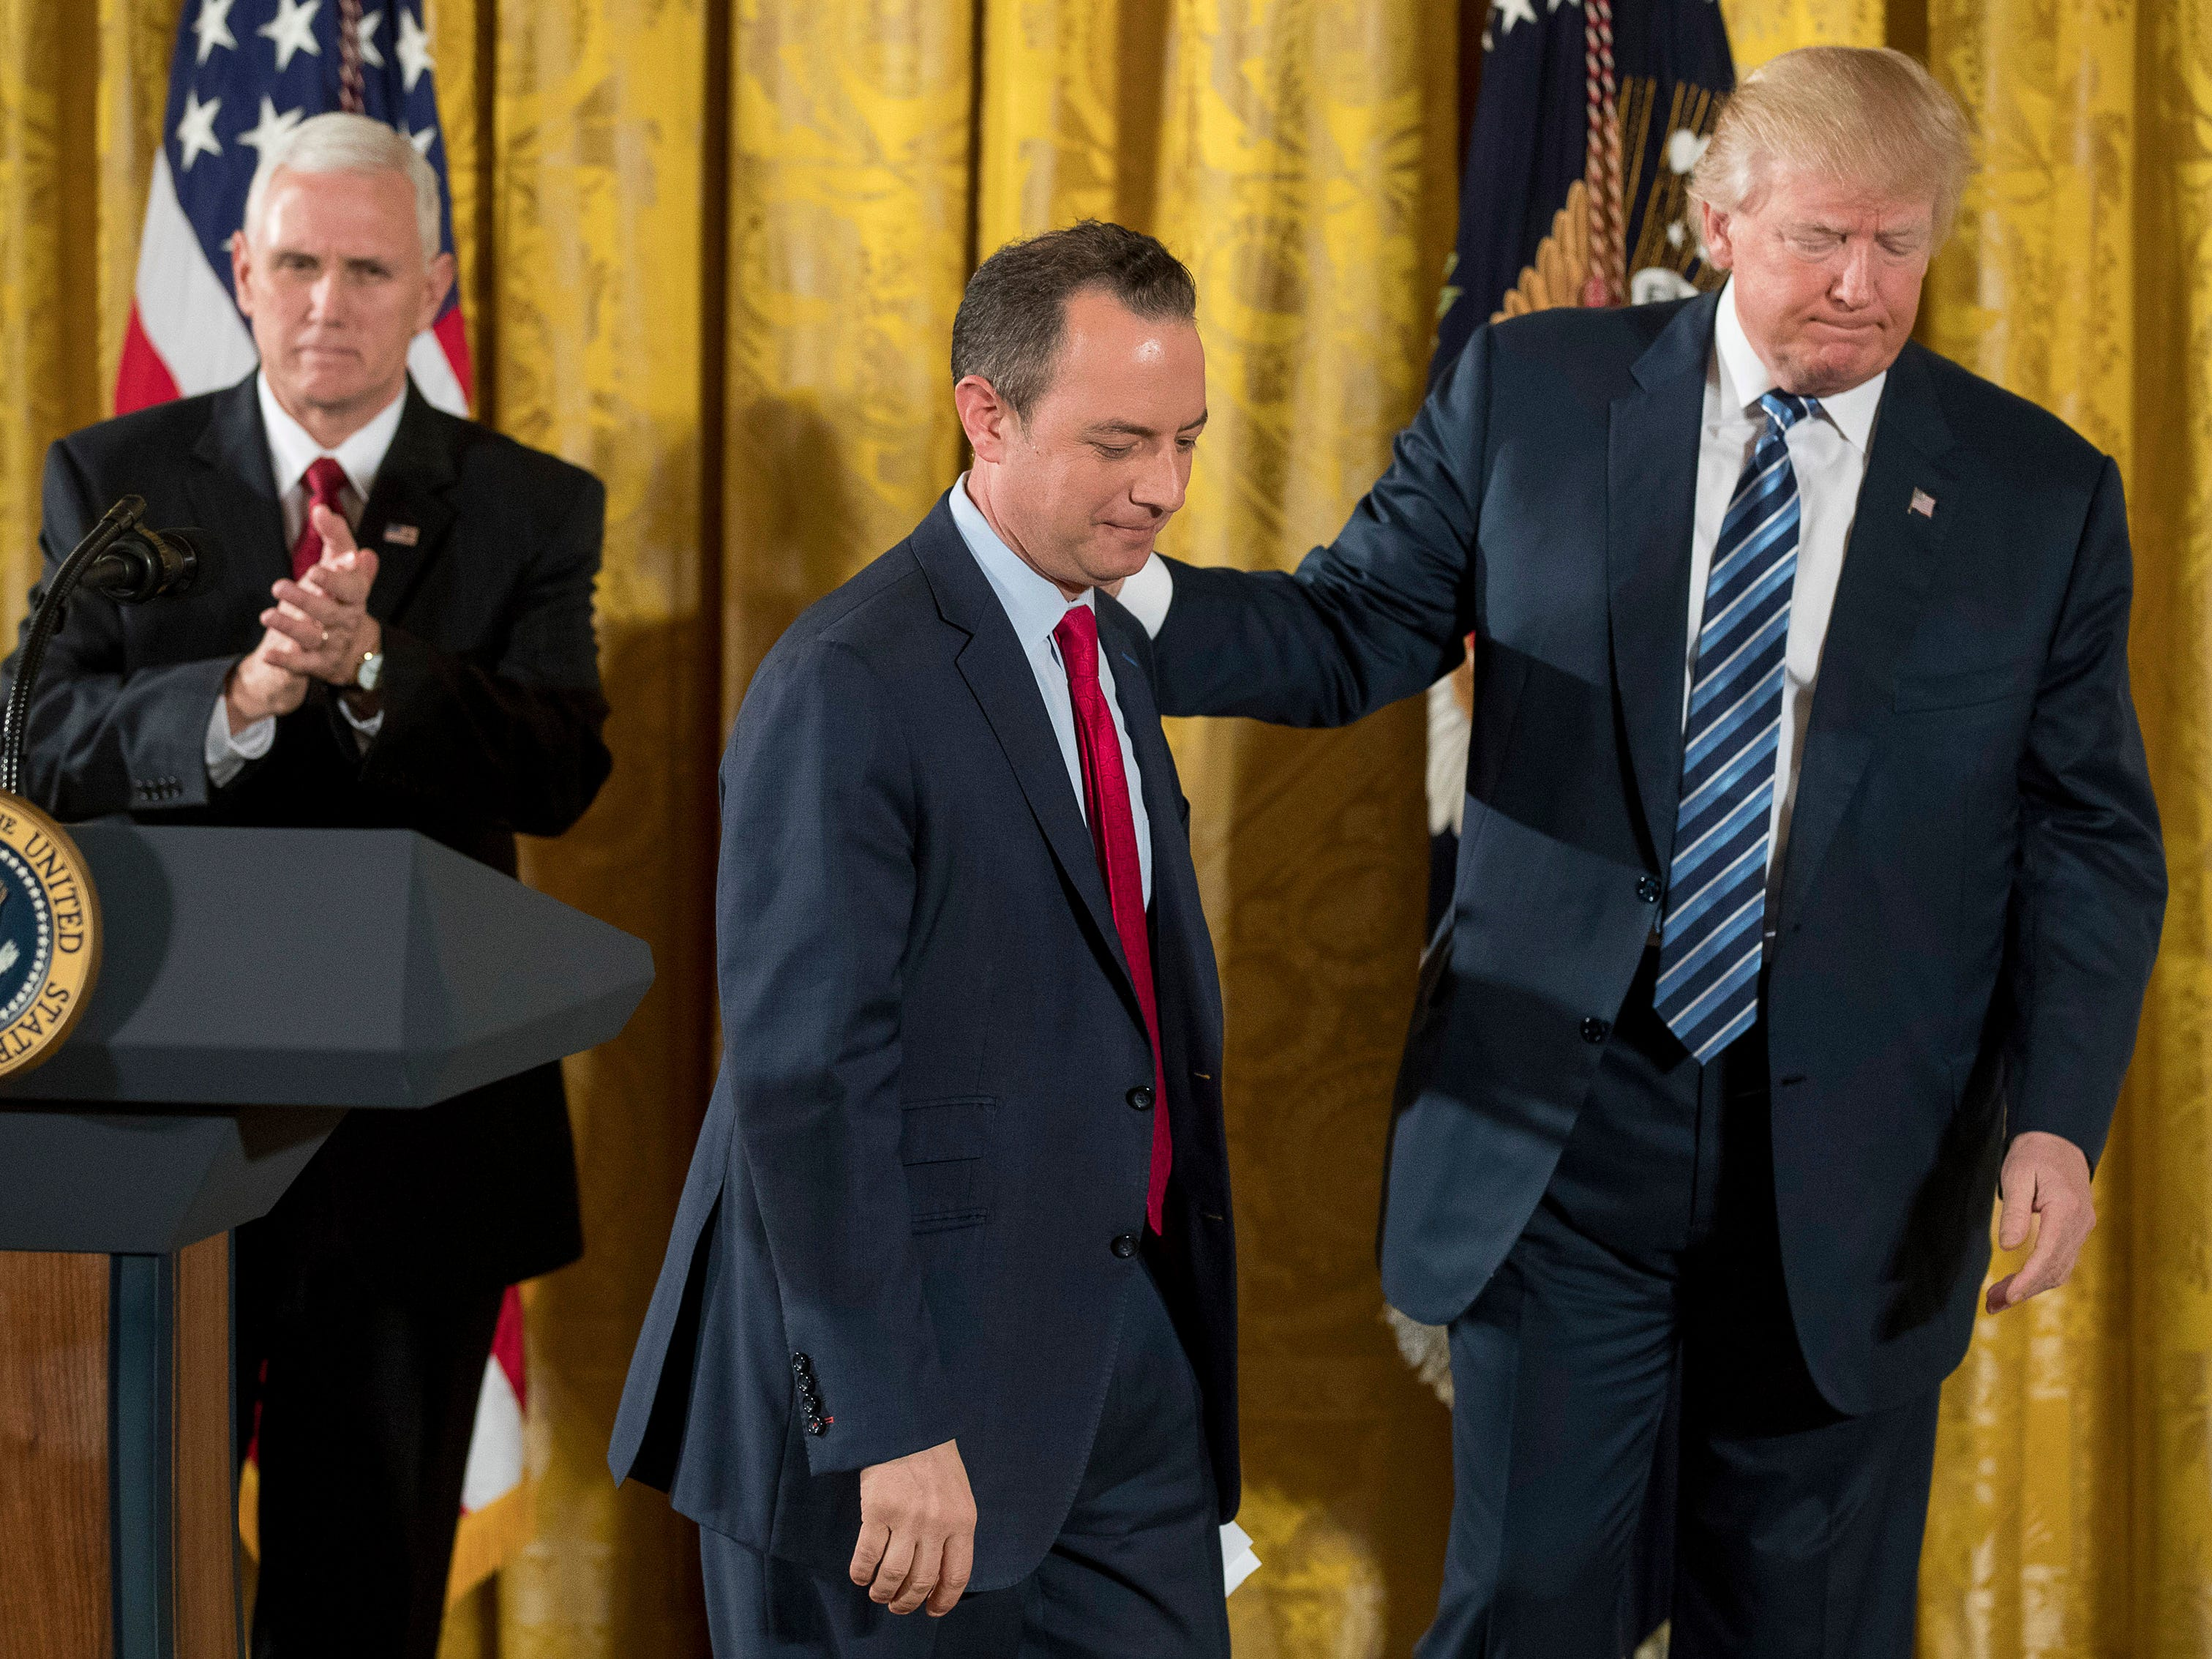 Trump Chief of Staff Reince Priebus (center), accompanied by Vice President Mike Pence (left), and President Donald Trump, leaves the stage after speaking during a White House senior staff swearing in ceremony in the East Room of the White House